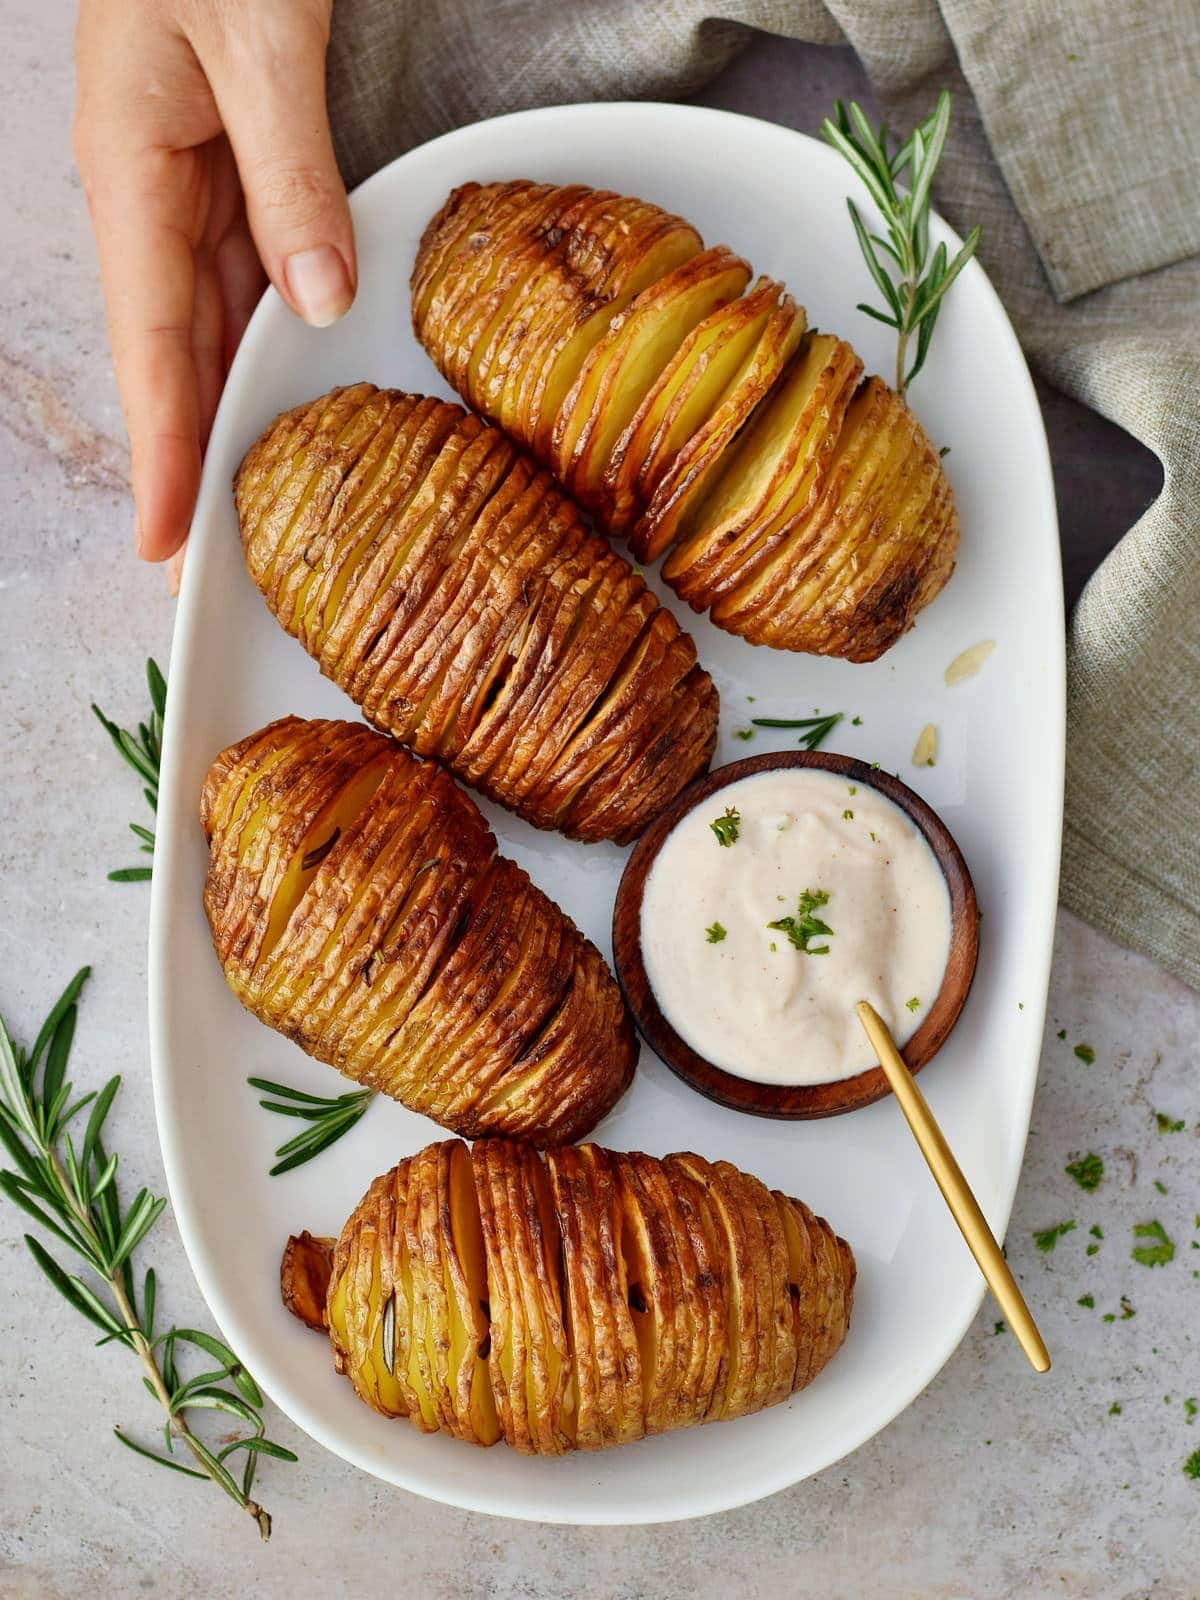 Hand holding a plate with crispy Hasselback potatoes and dip